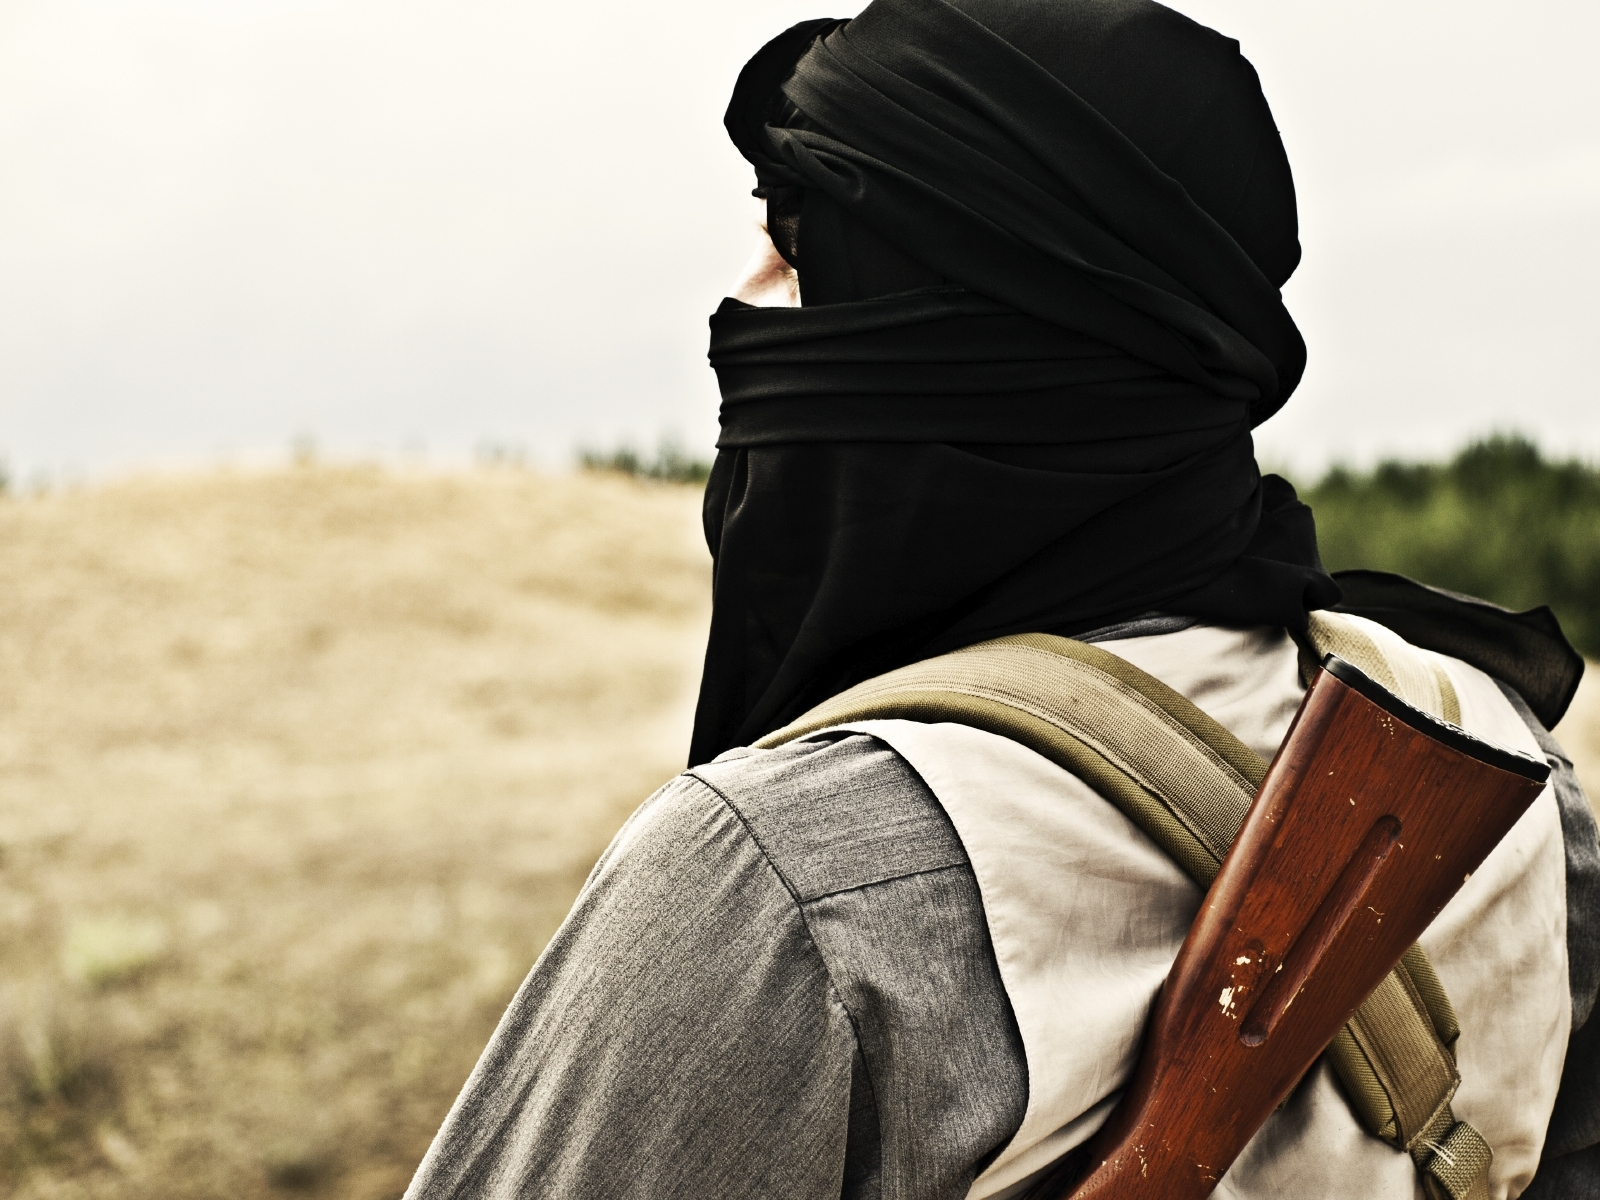 The historical  origins of global jihad, revisited